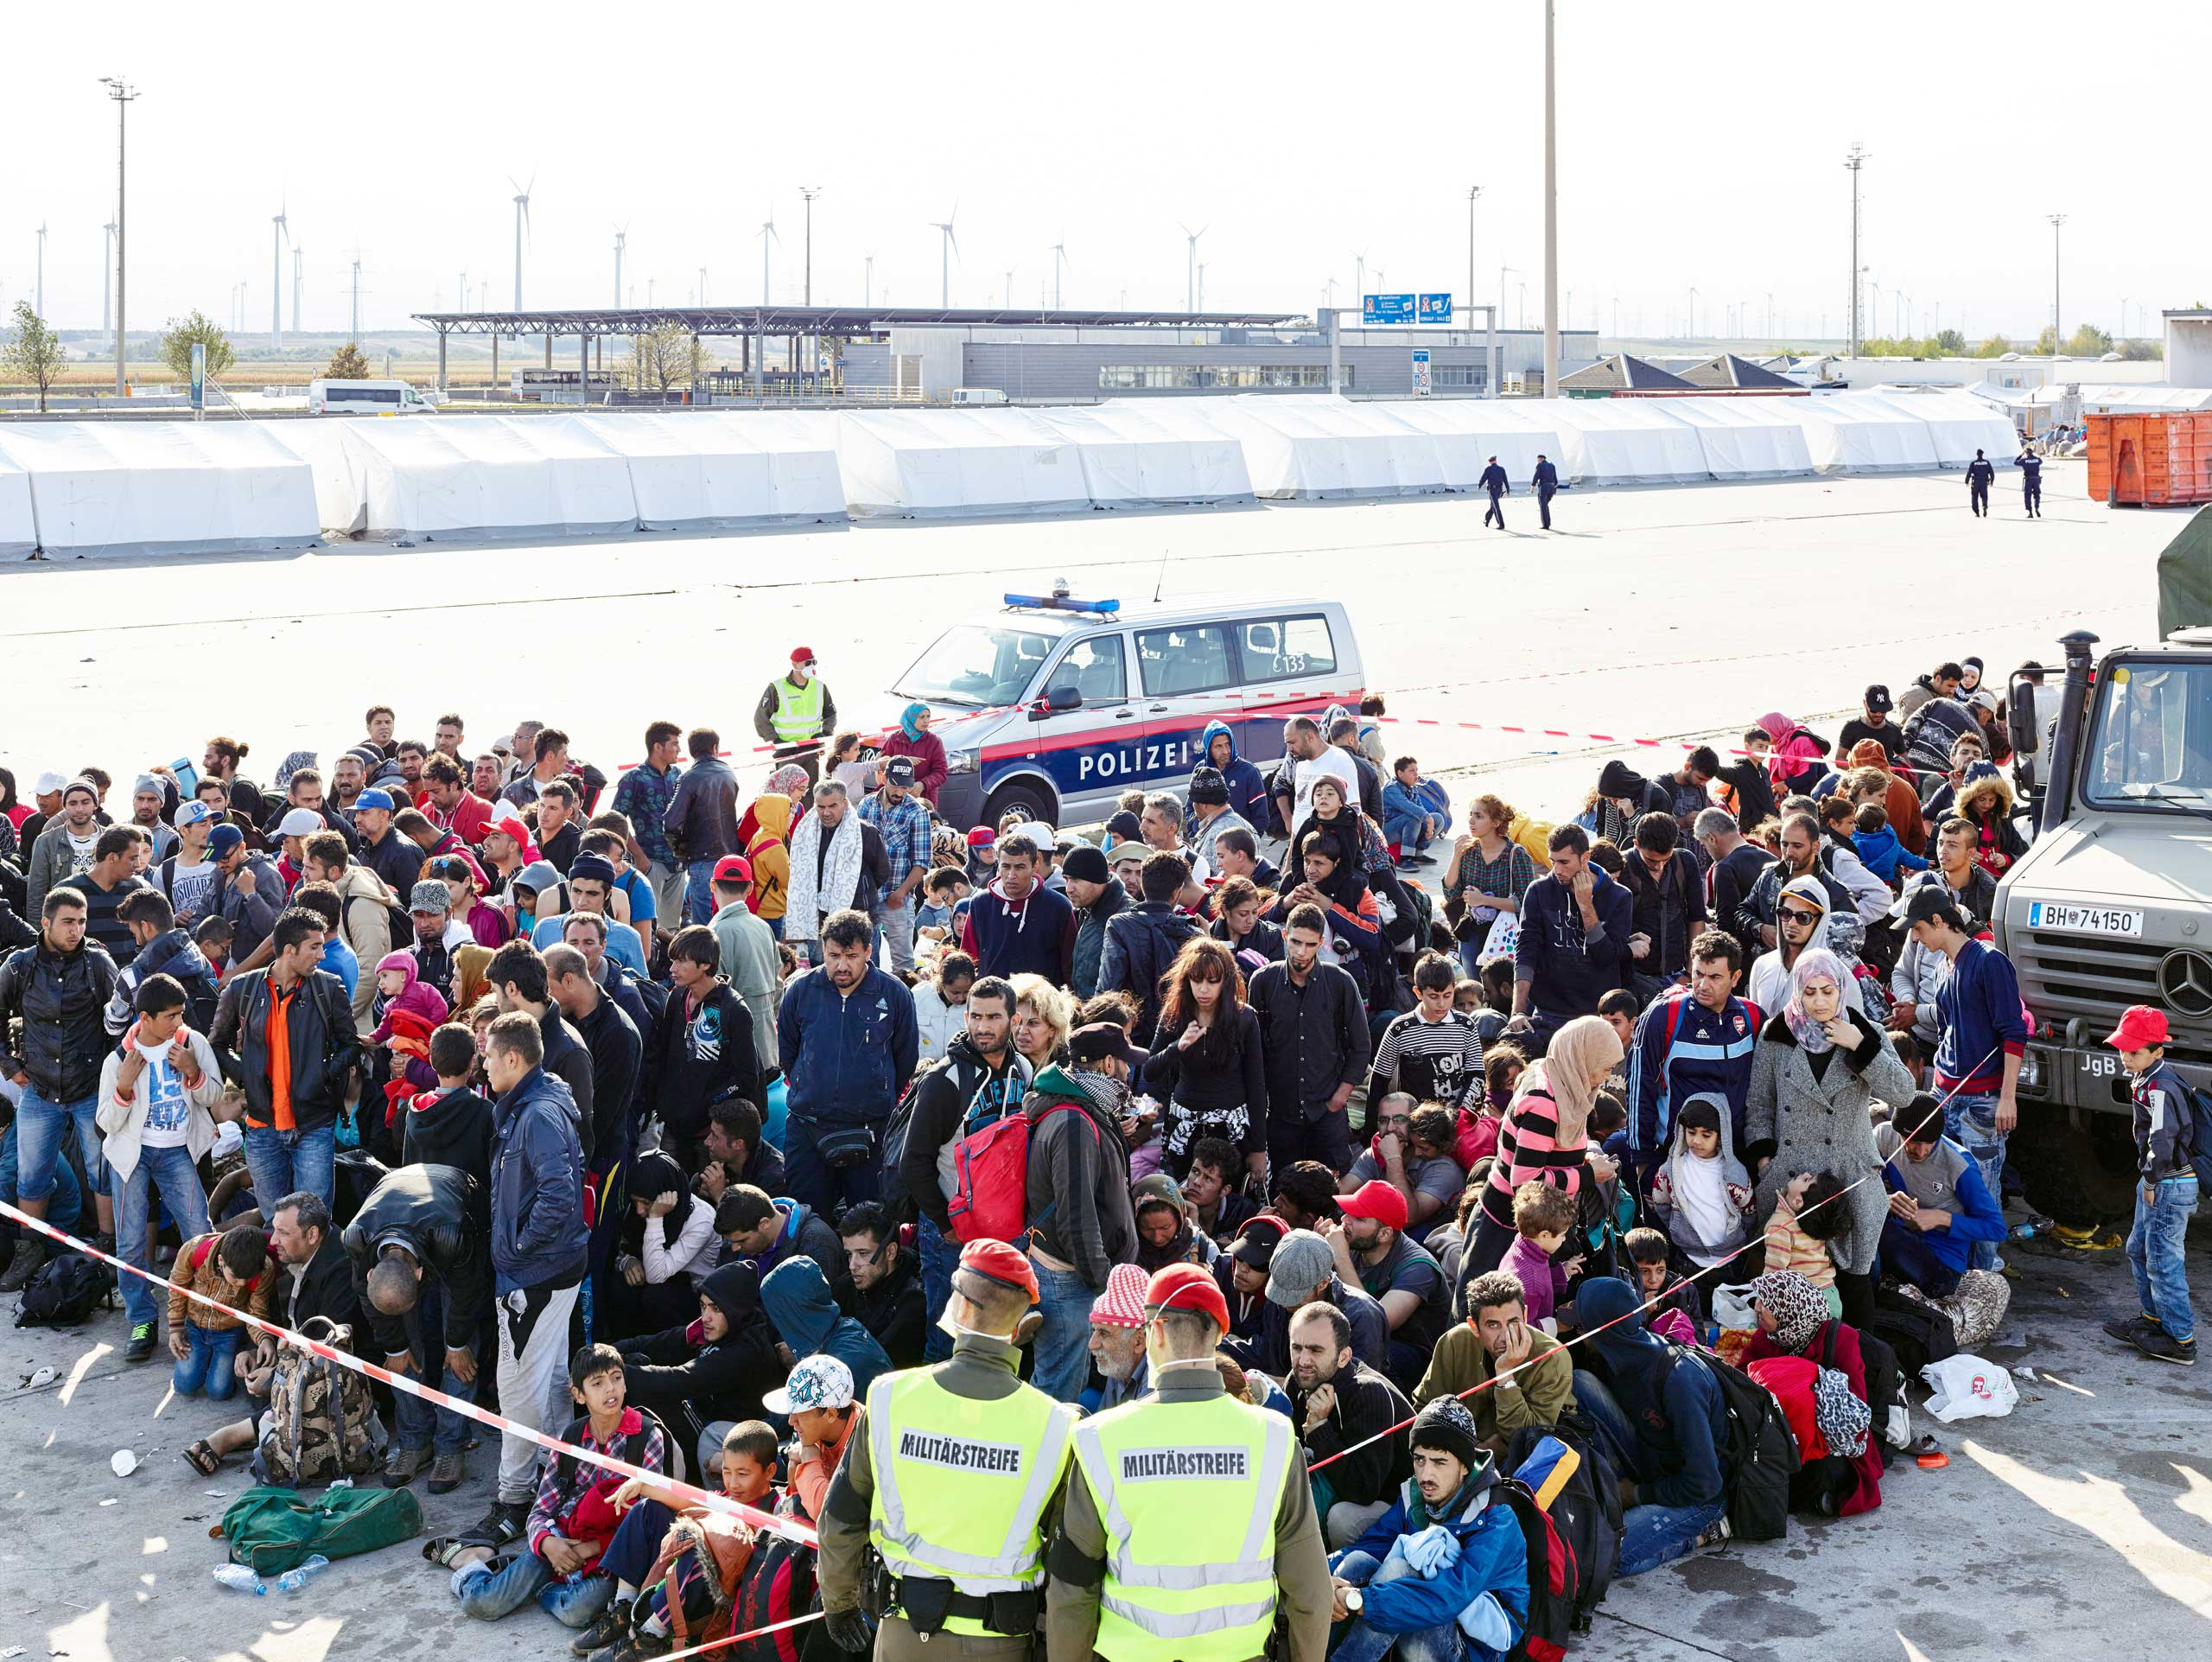 Austrian police and army personnel in Nickelsdorf organize groups of migrants as they prepare to be loaded onto buses to take them further into Europe.